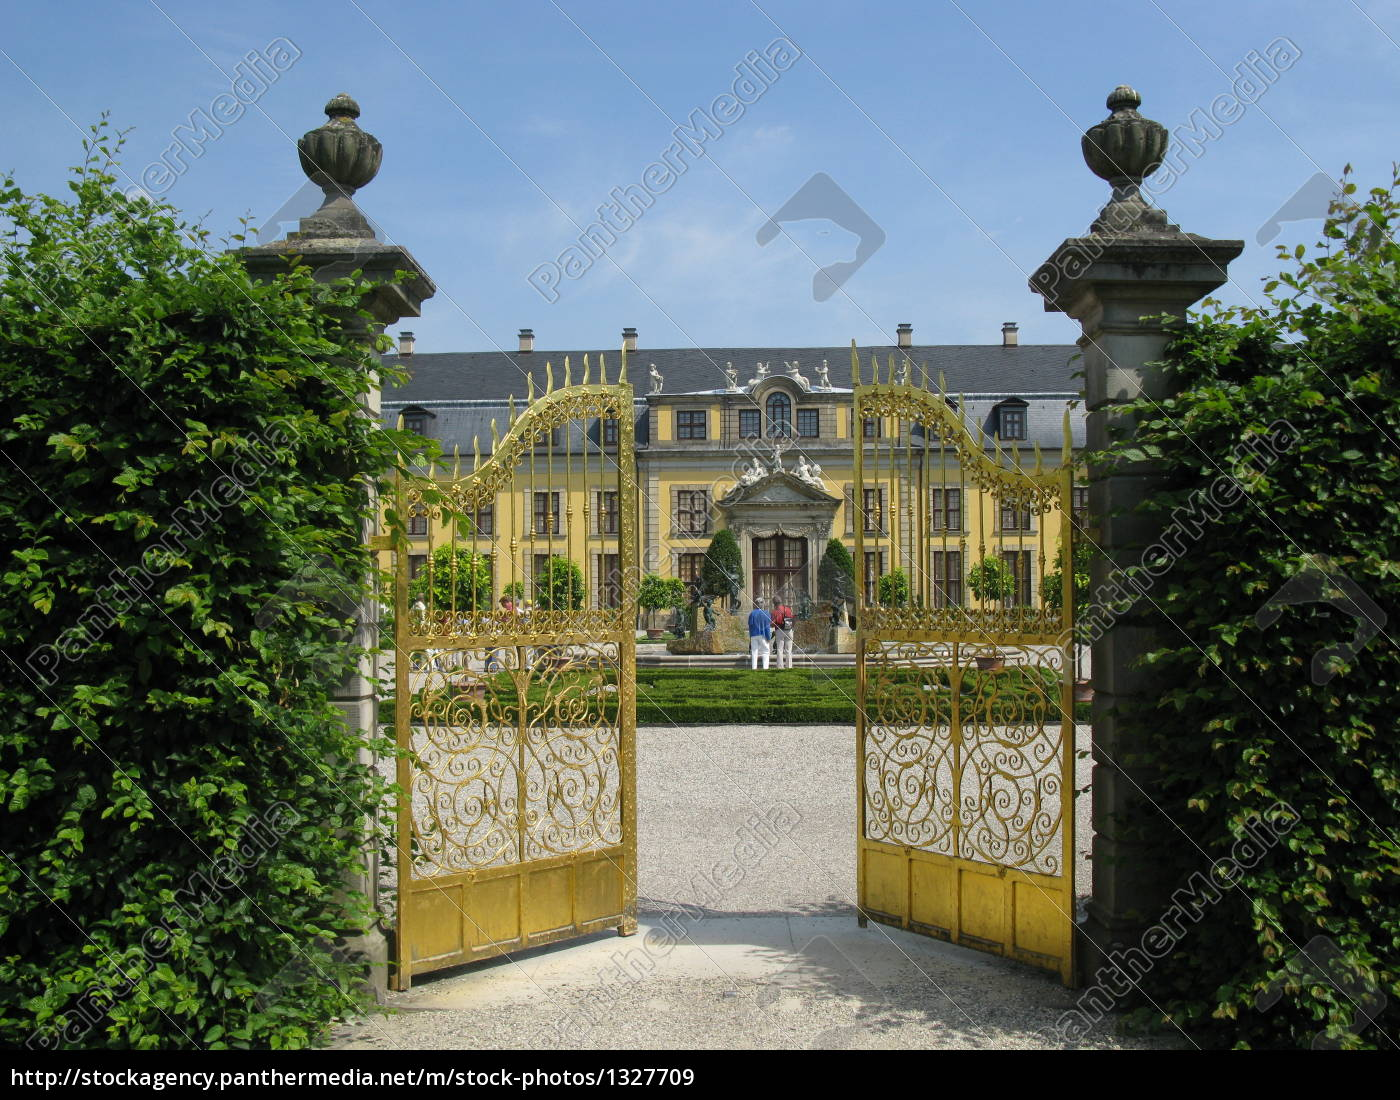 entrance, to, the, gallery, building, herrhausen - 1327709